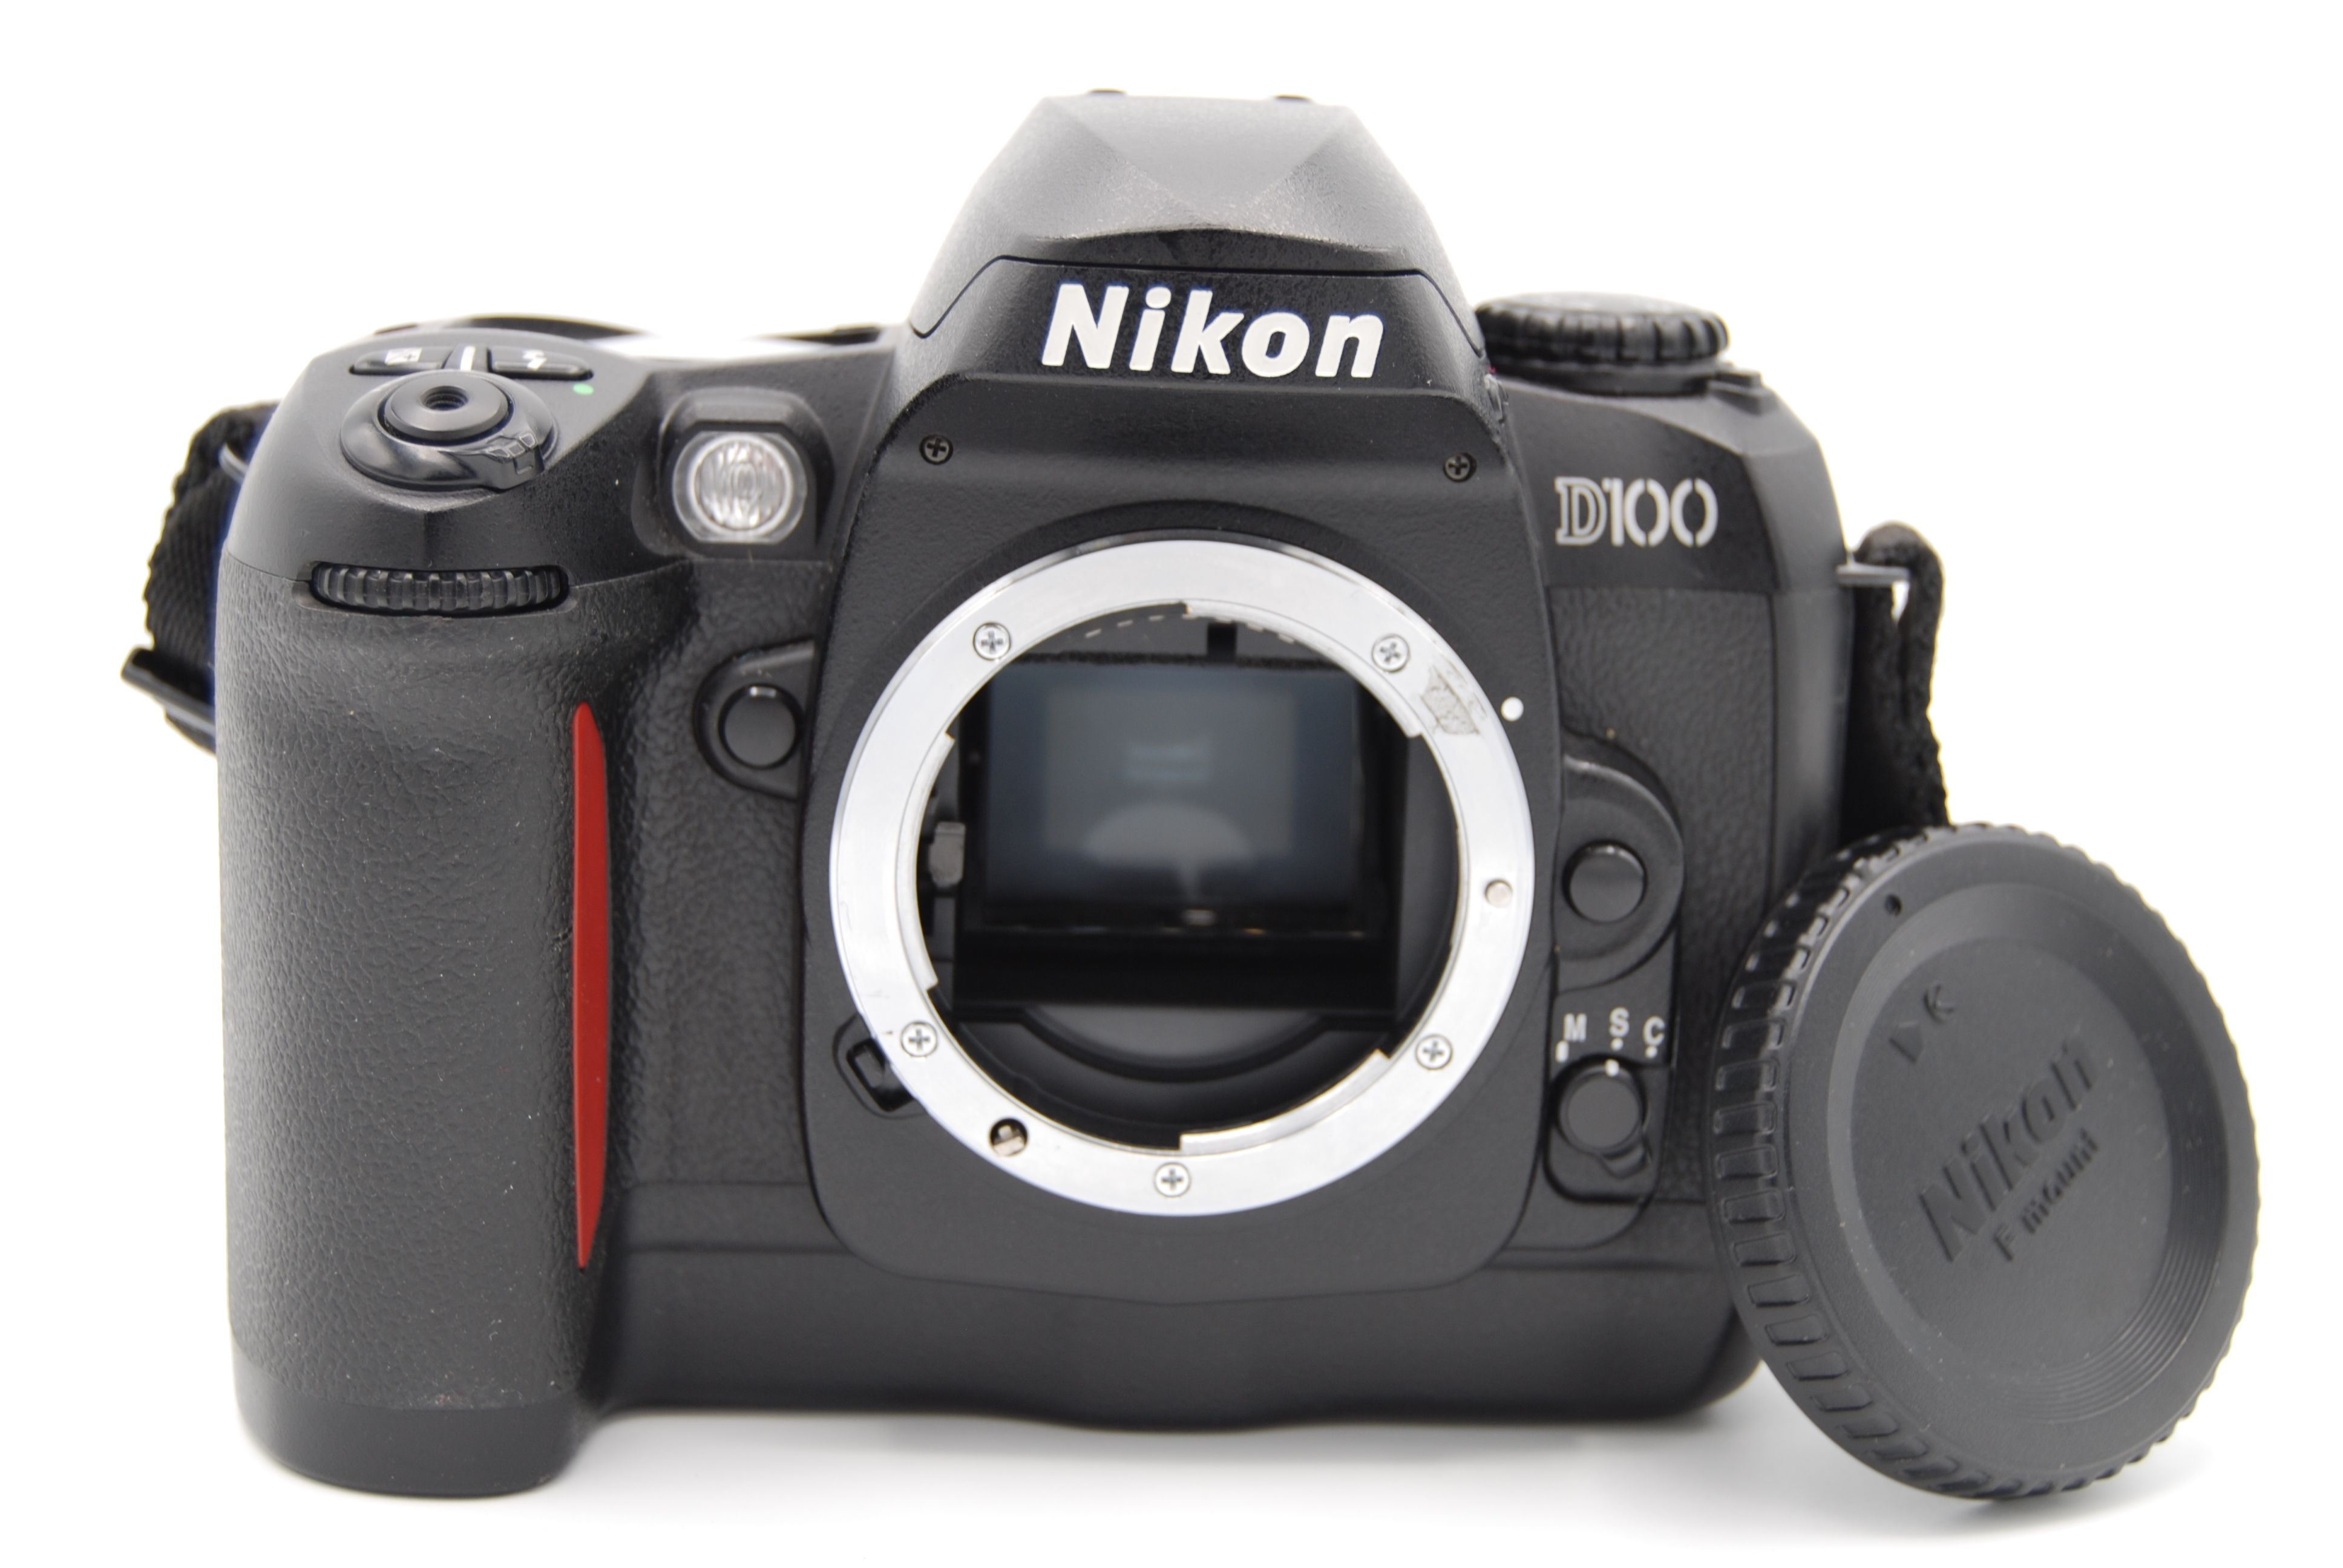 Details about Nikon D100 6.1 MP 1.8'' SCREEN Digital SLR Camera Body Only  WITH BATTERY